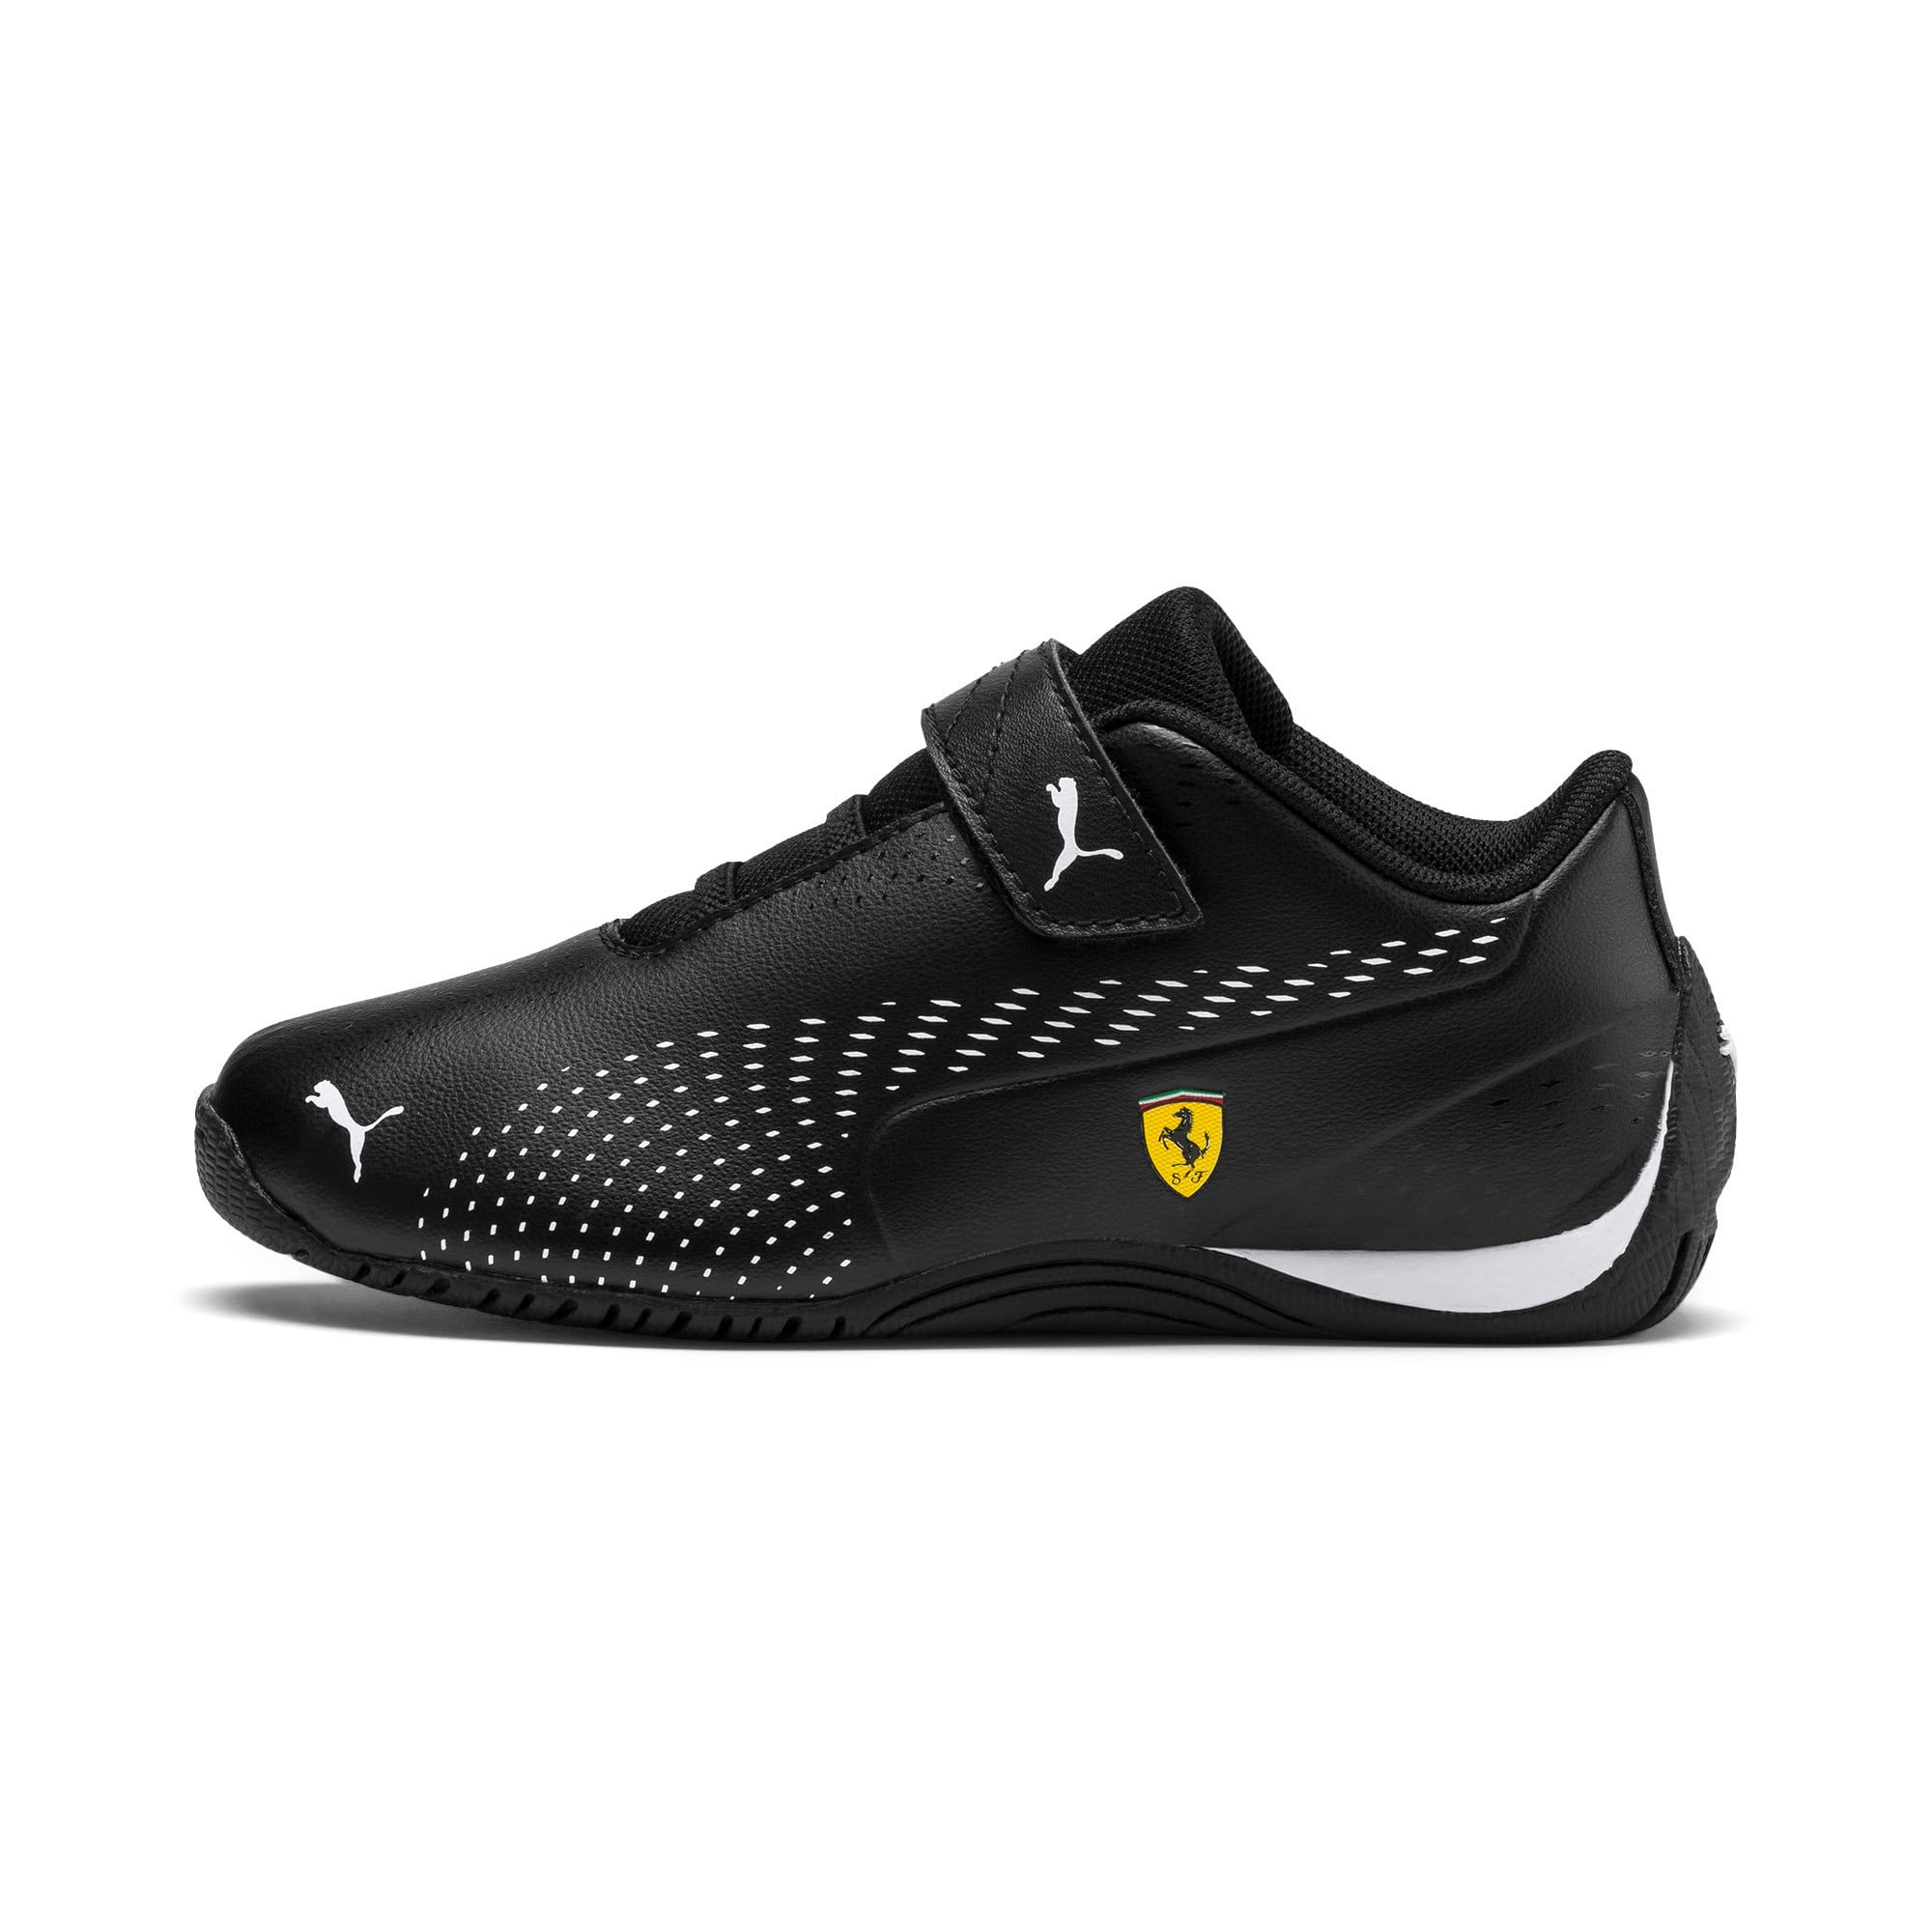 Thumbnail 1 of Ferrari Drift Cat 5 Ultra II V Kids' Trainers, Puma Black-Puma White, medium